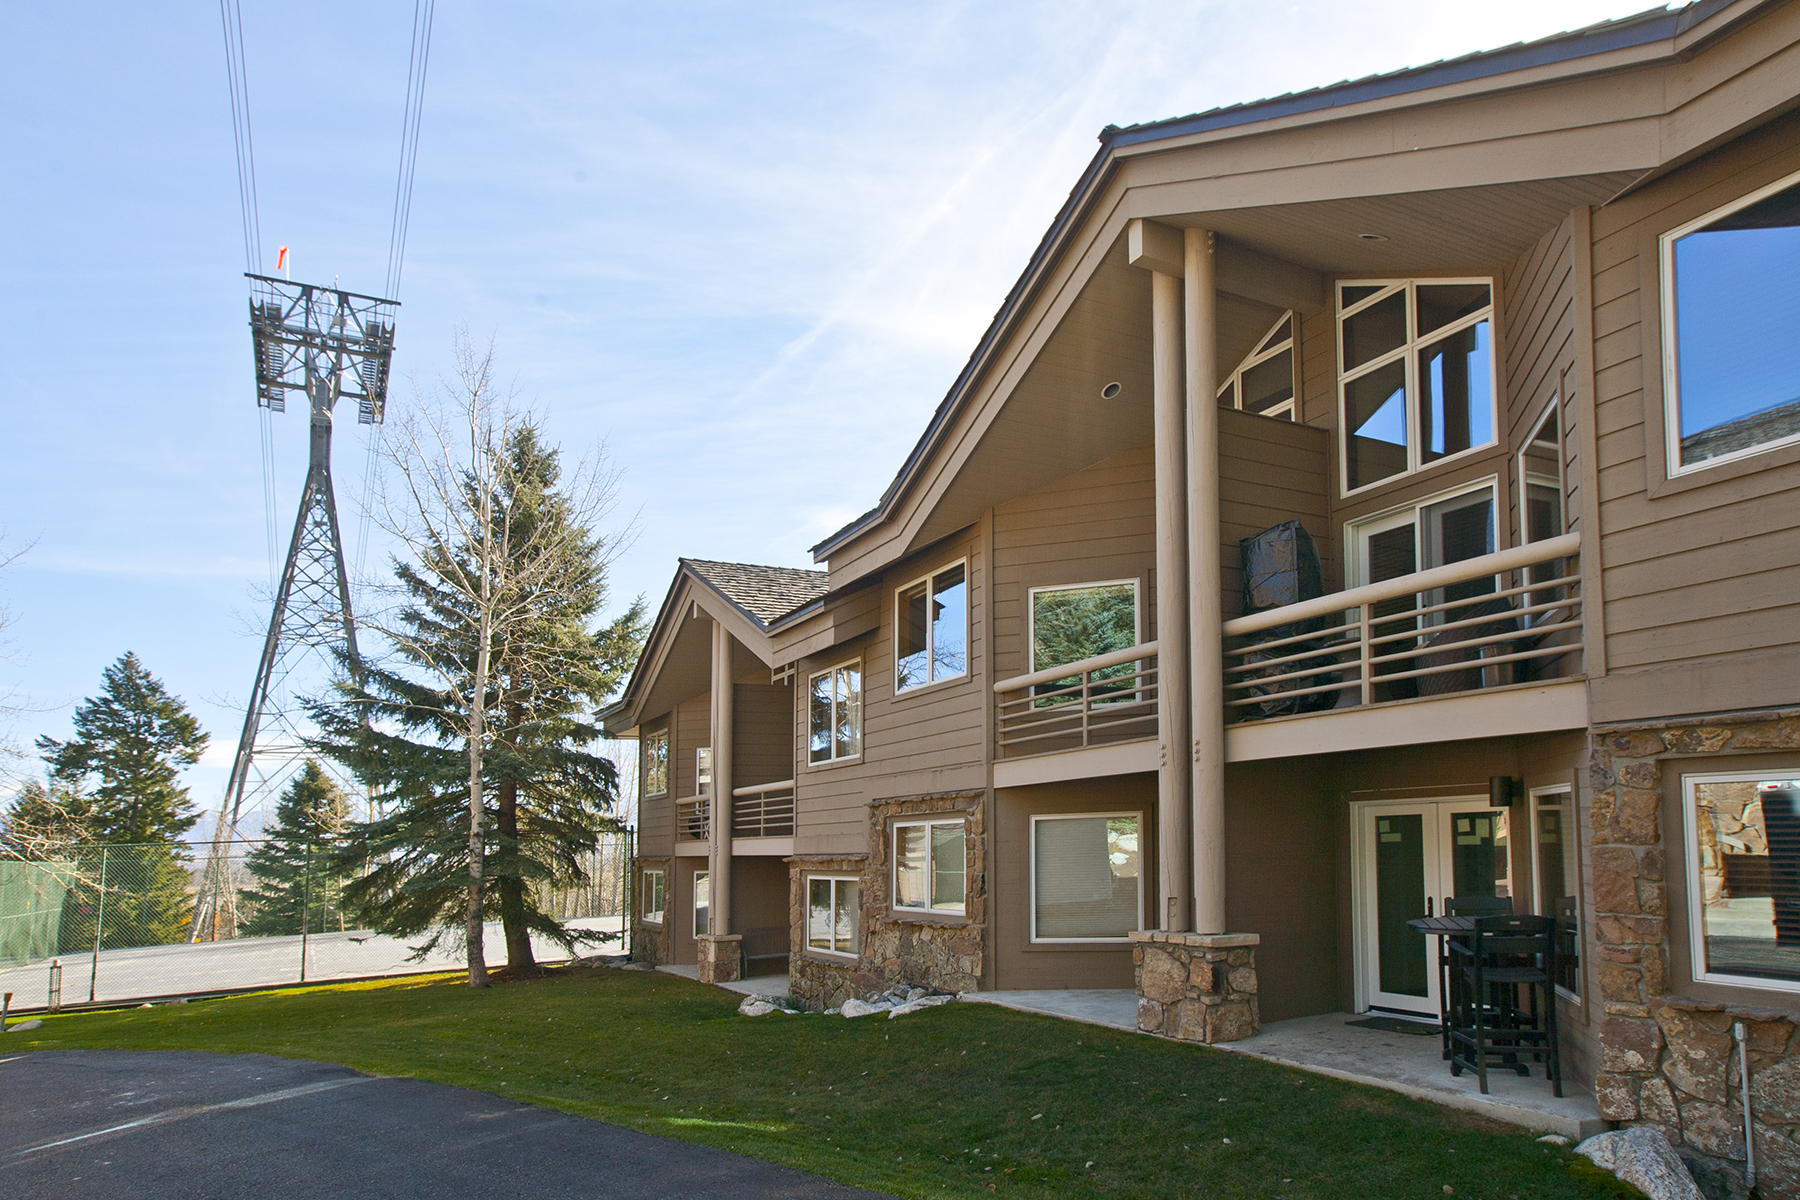 Таунхаус для того Продажа на Ski-InSki-Out Tram Tower Townhome 3531 W. McCollister Teton Village, Вайоминг, 83025 Jackson Hole, Соединенные Штаты